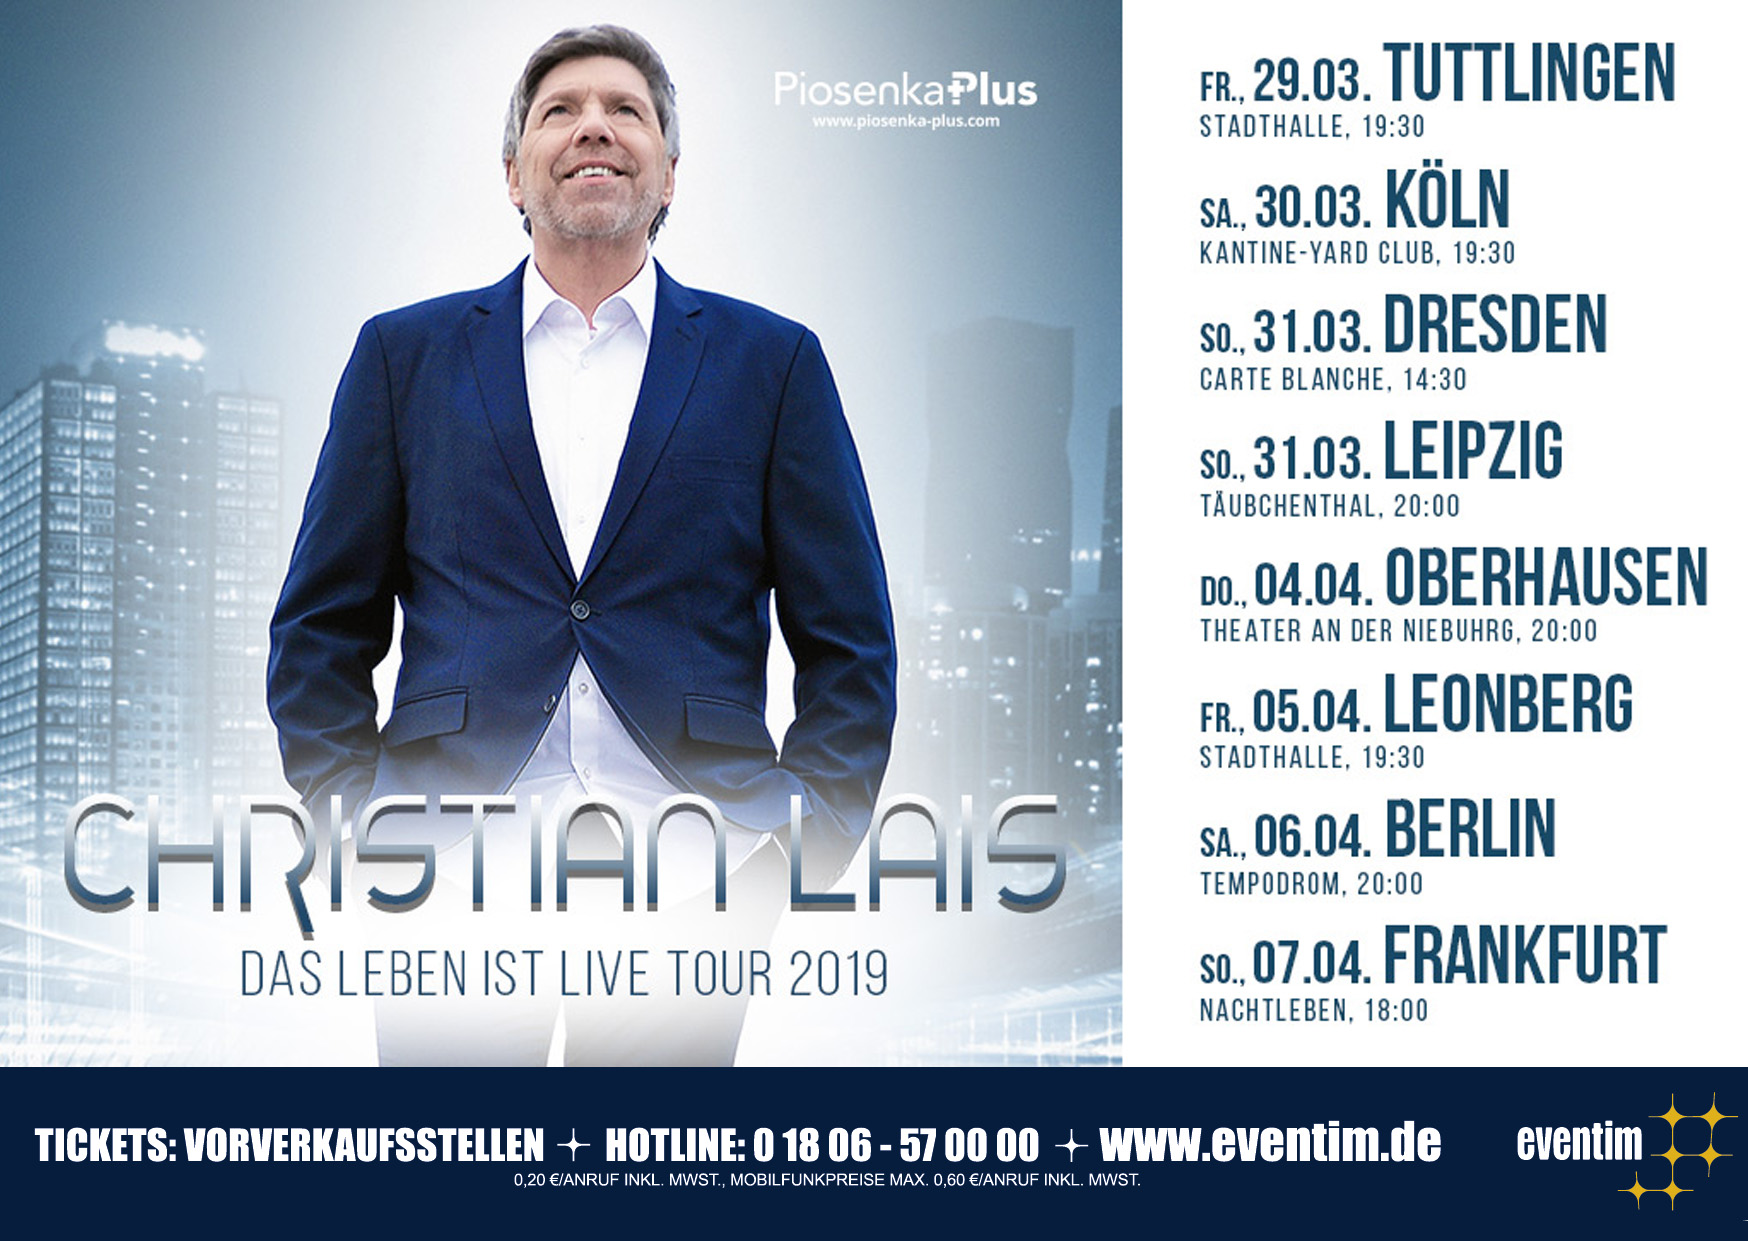 Christian Lais Tour 2019